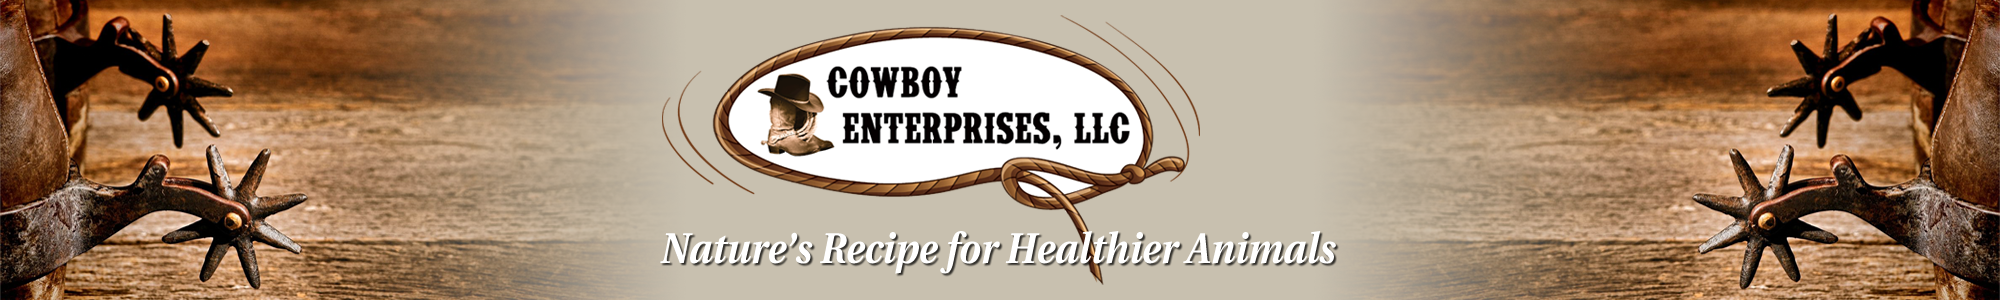 Cowboy Enterprises, LLC